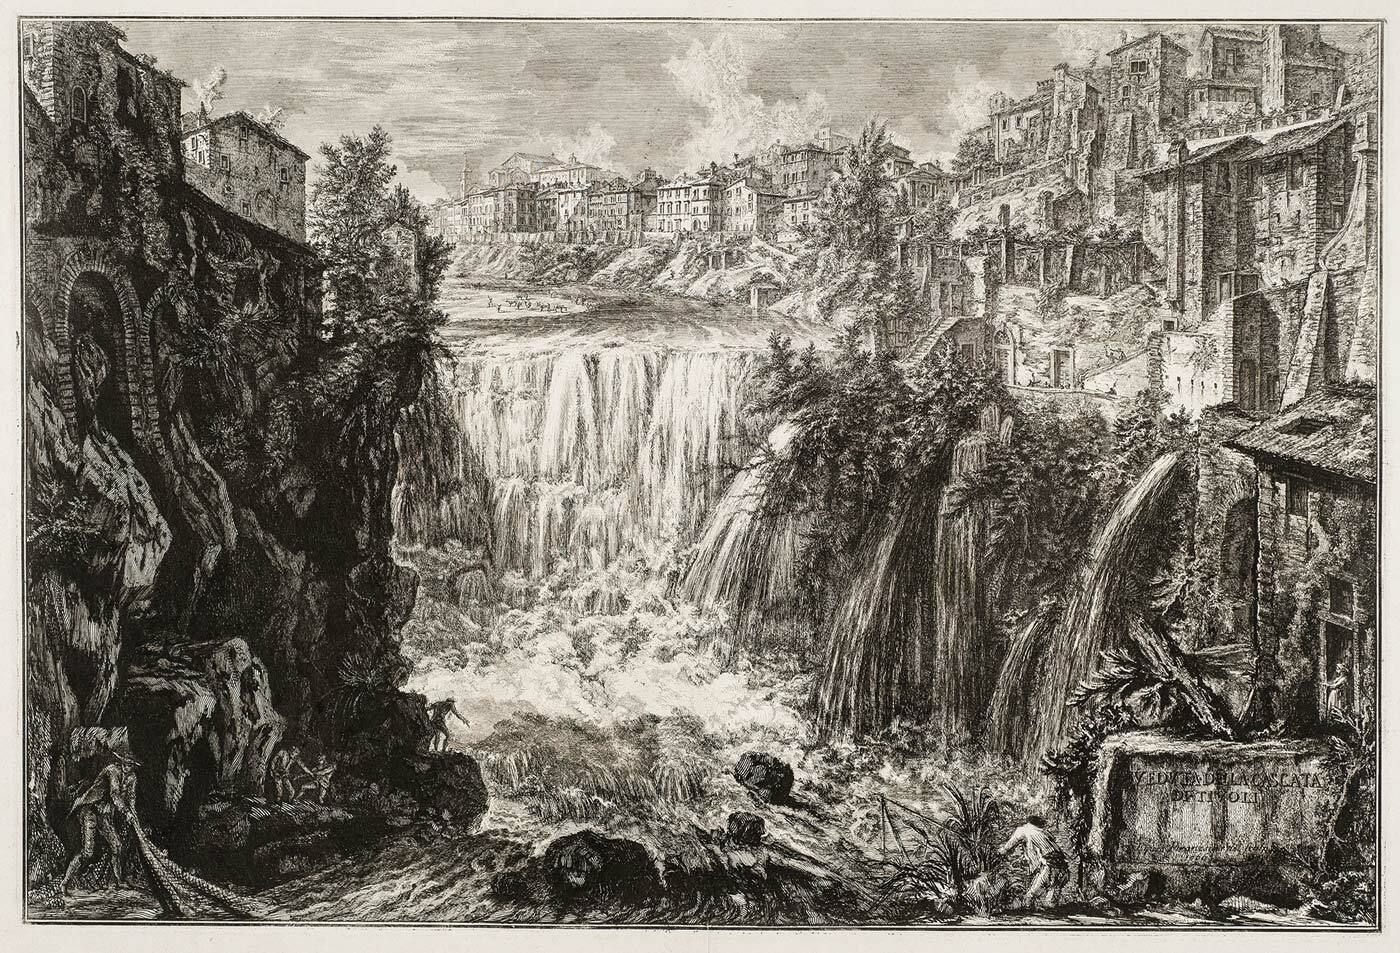 Veduta della Cascata di Tivoli, Vedute di Roma by Piranesi (collection KABK Library)